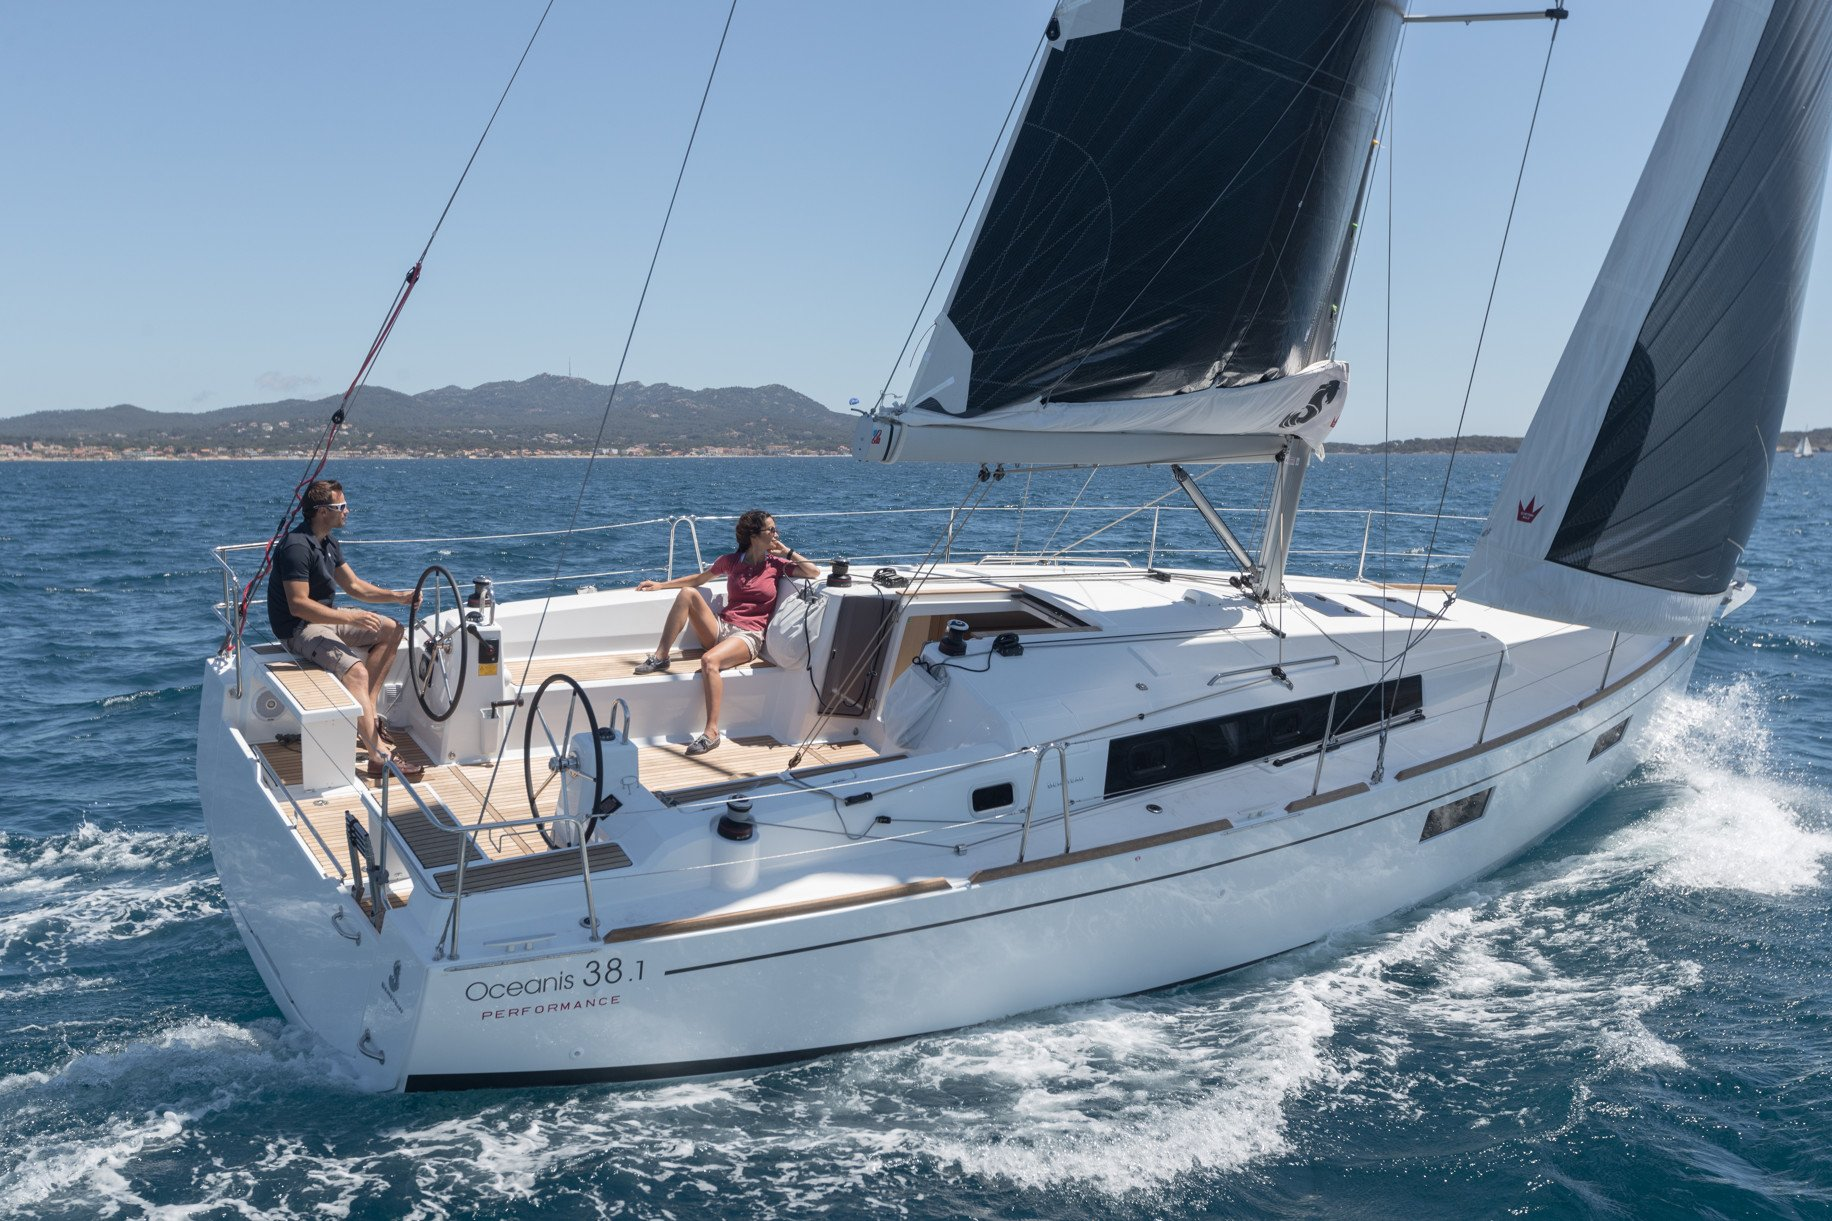 Sunsail Premier Plus Oceanis 38.1